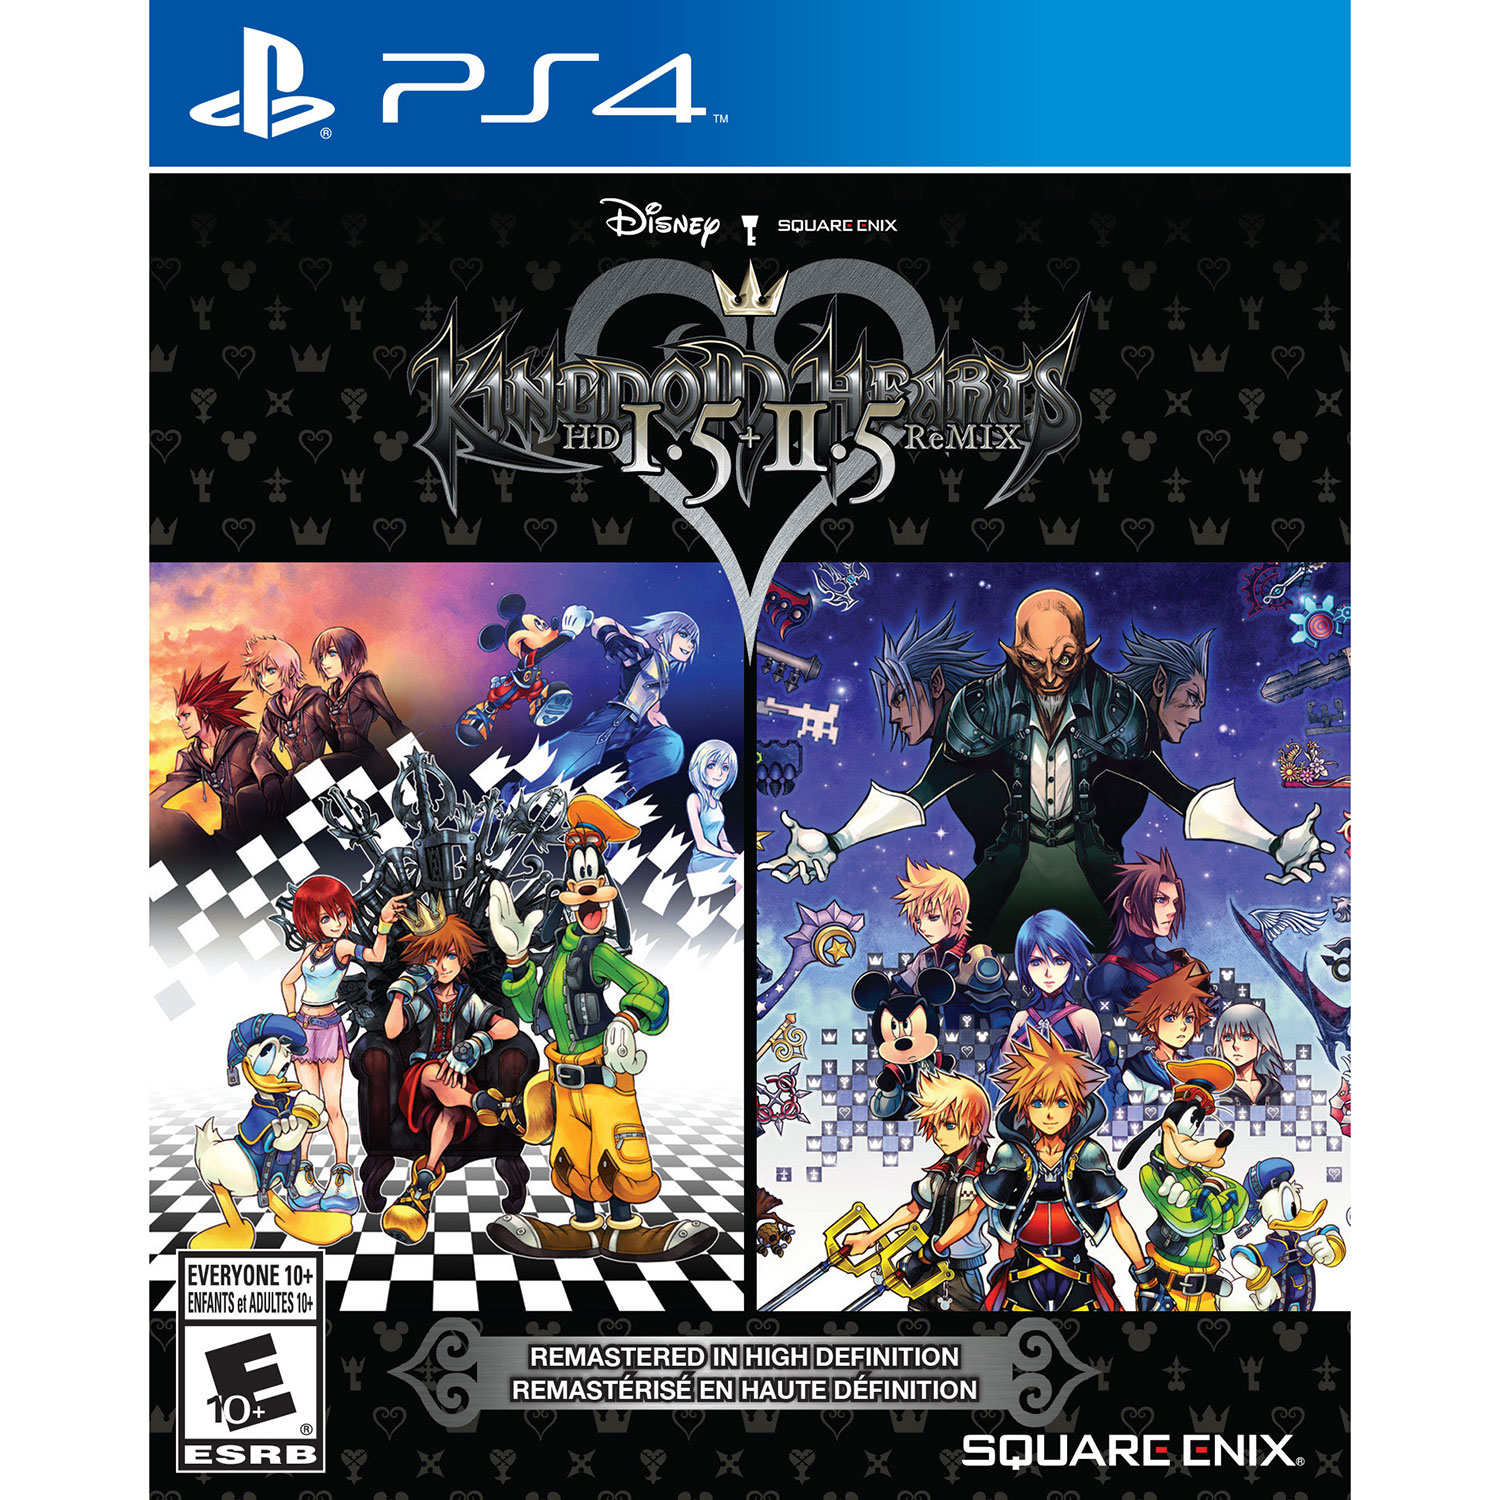 video games shop gaming consoles accessories best buy kingdom hearts hd 1 5 2 5 remix ps4